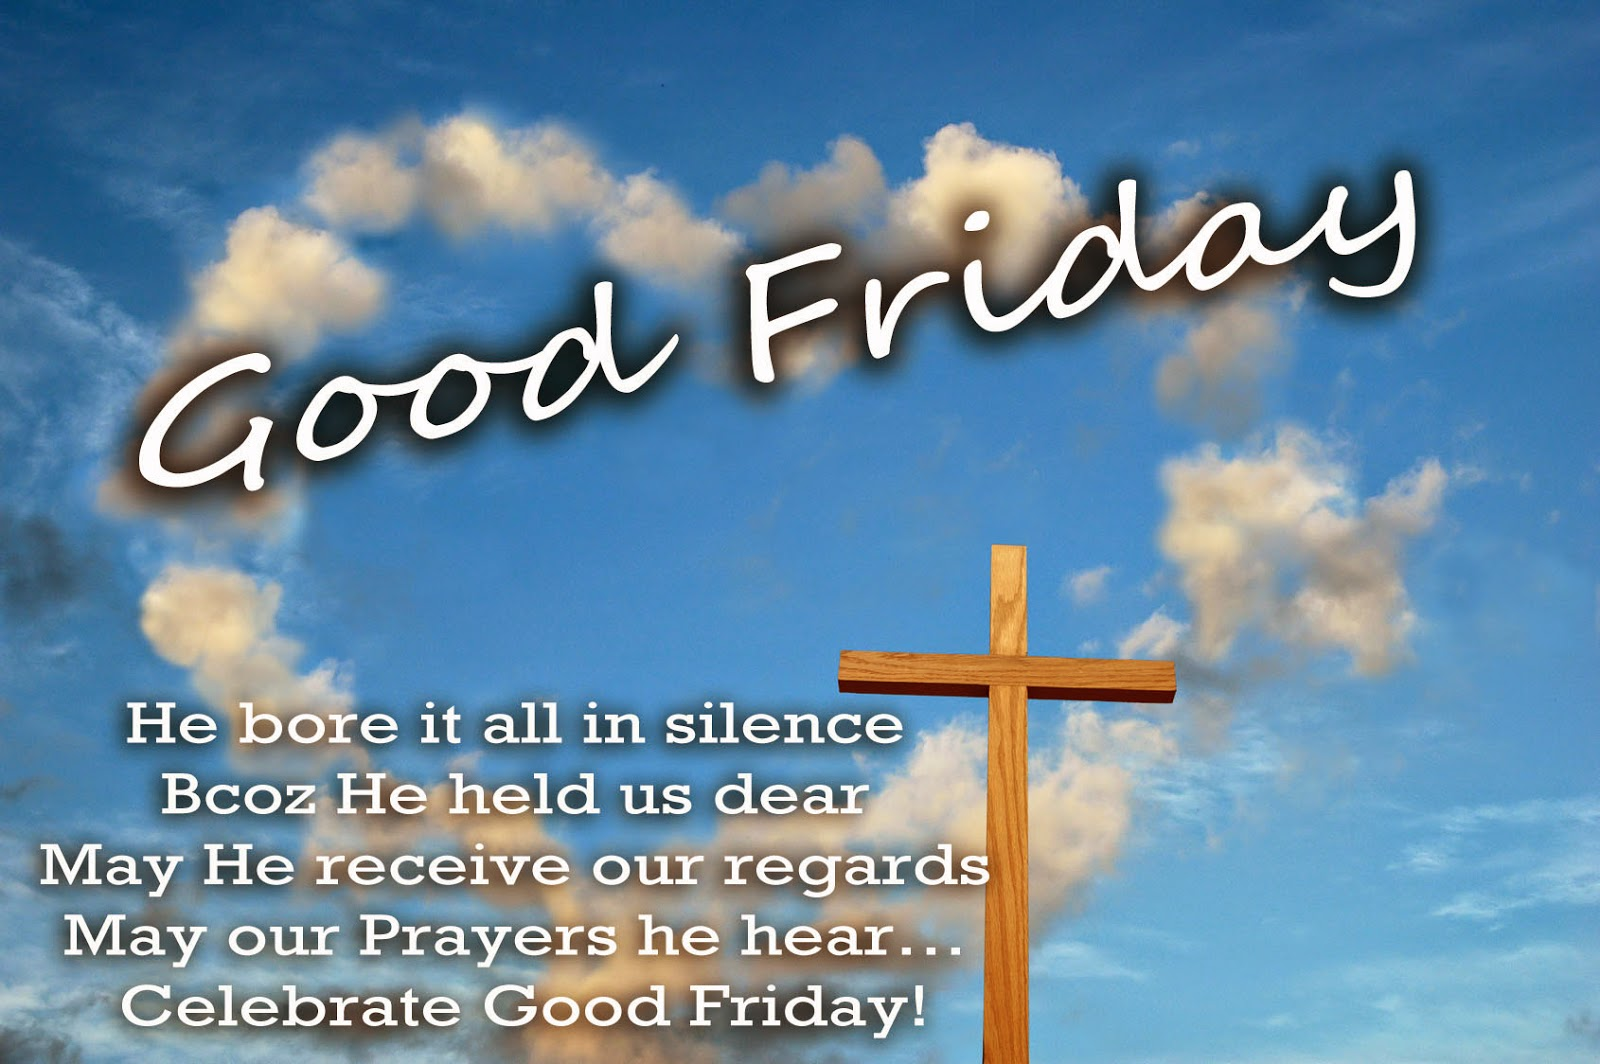 Good Friday Wishes Messages Sms Quotes Greetings With Ecards